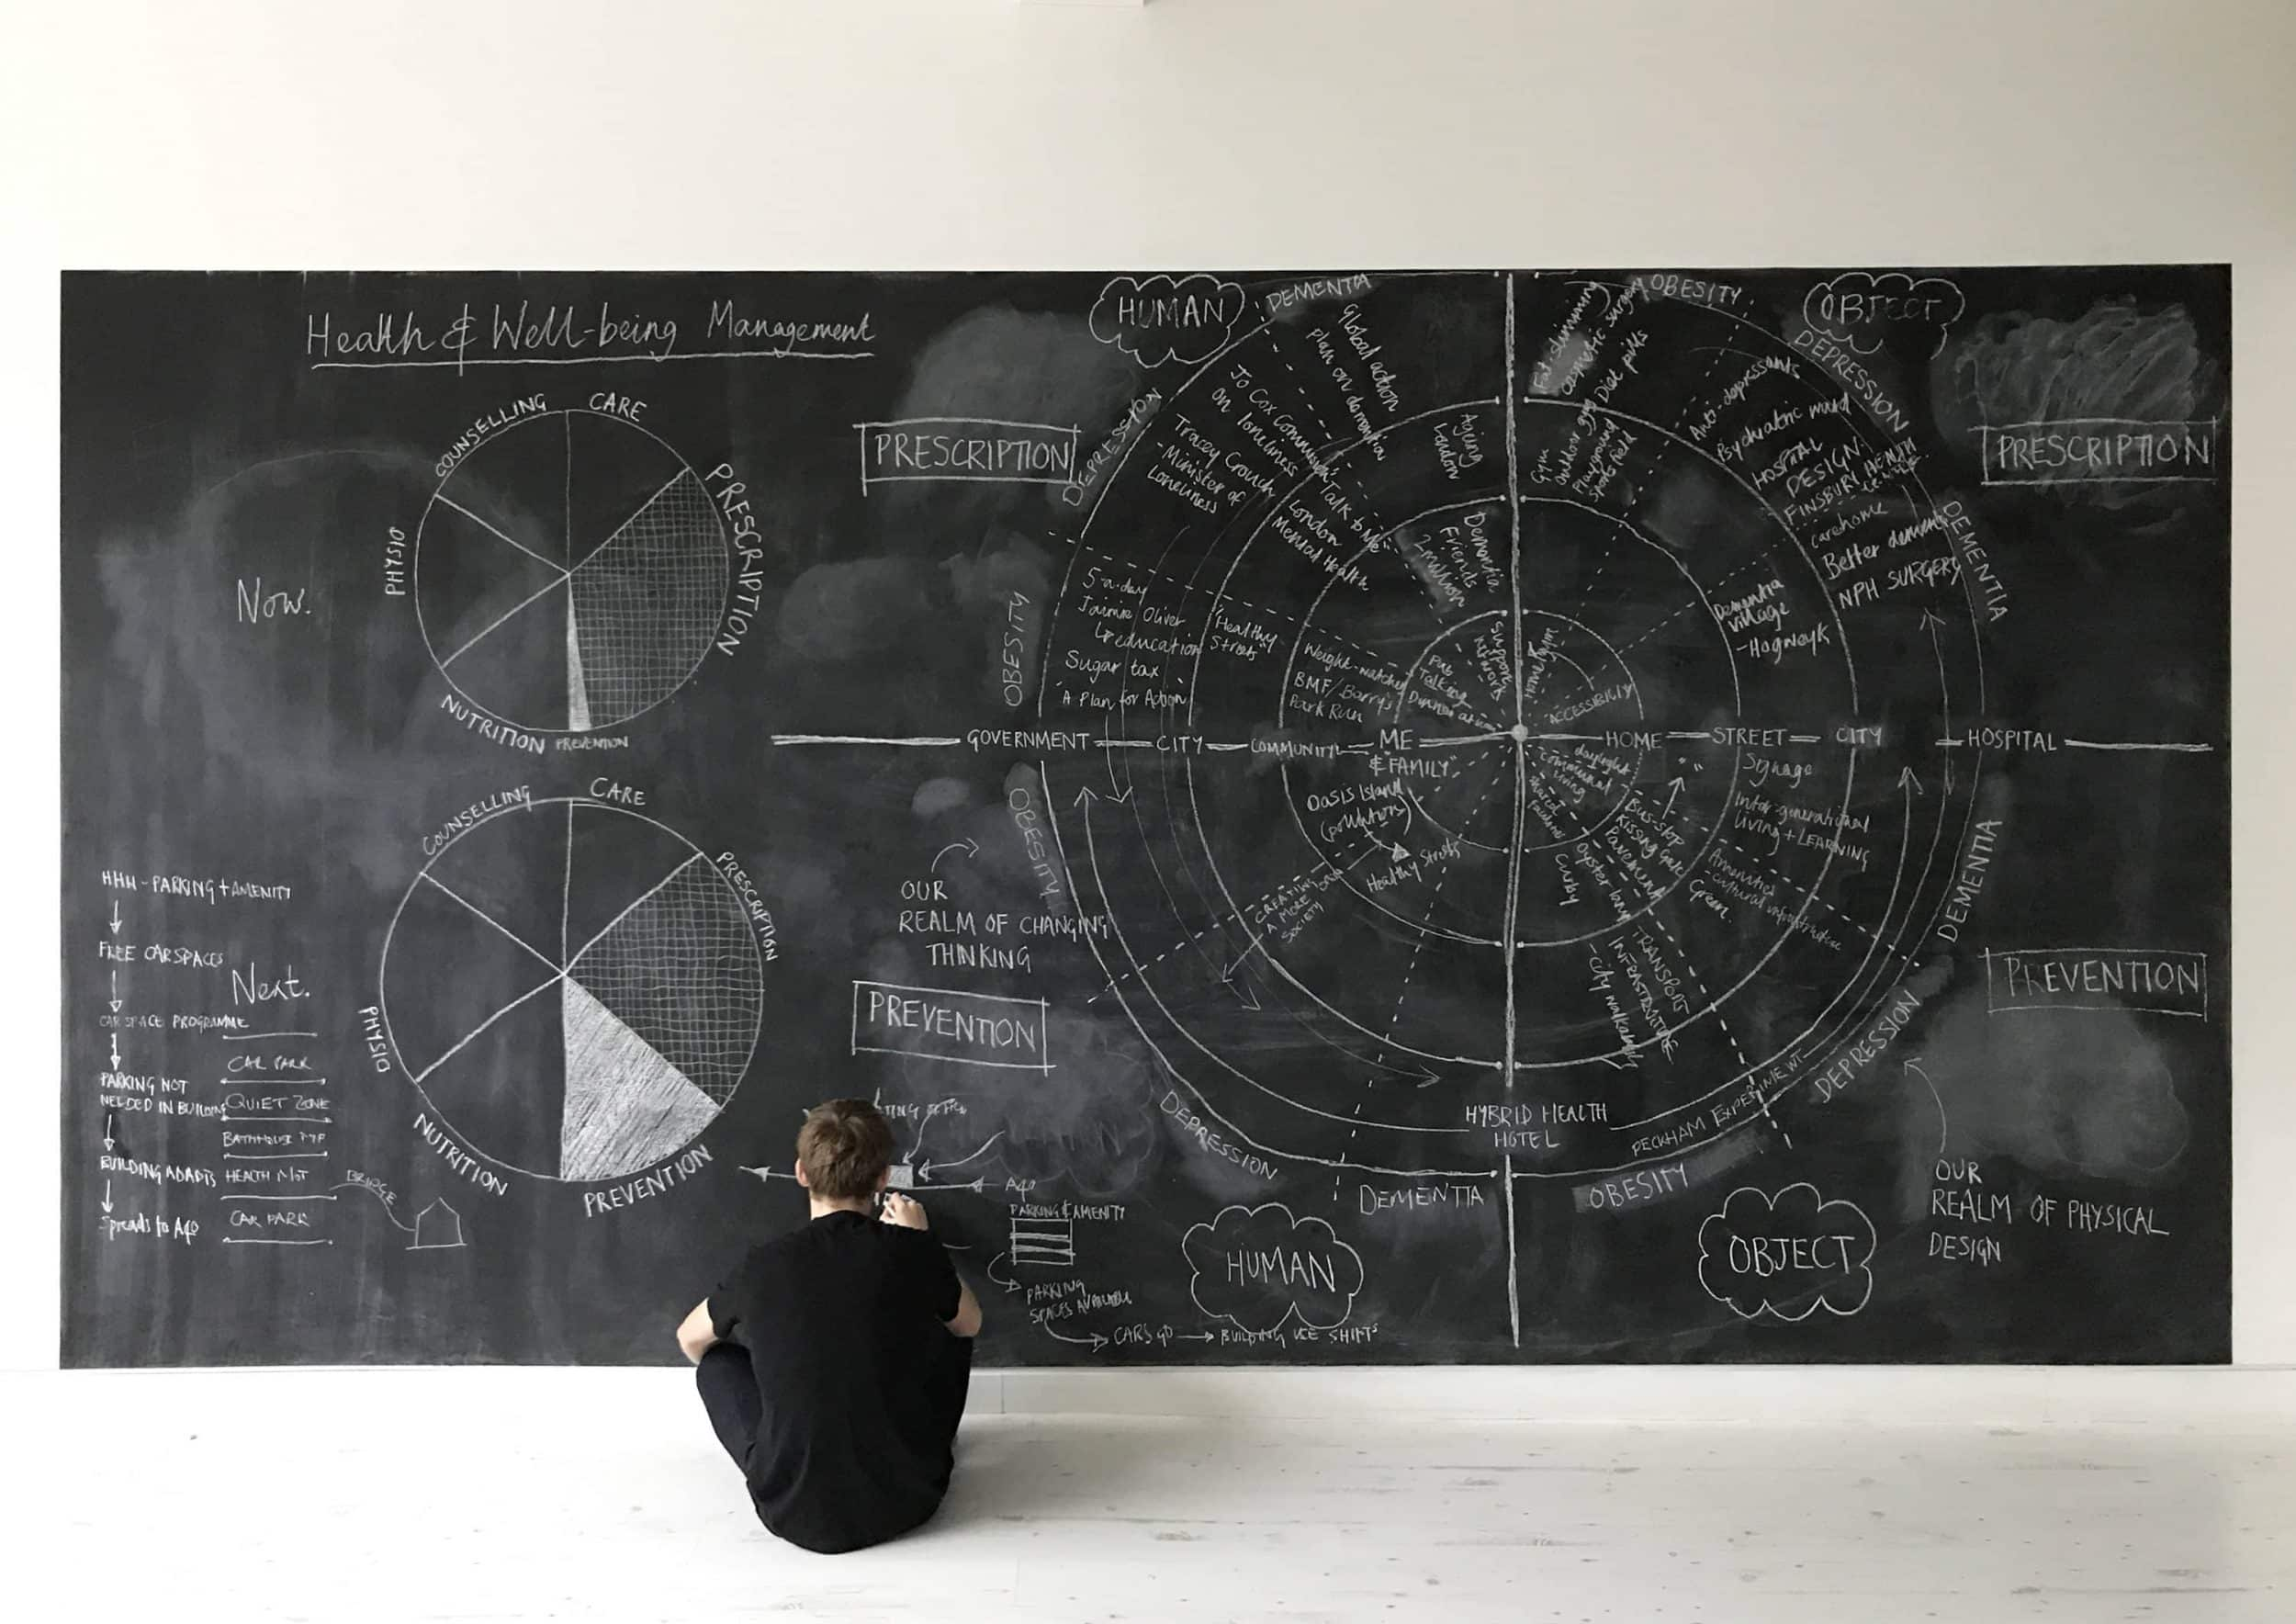 Metabolic City Research into Health and Wellbeing through urban design chalk board architect thinking